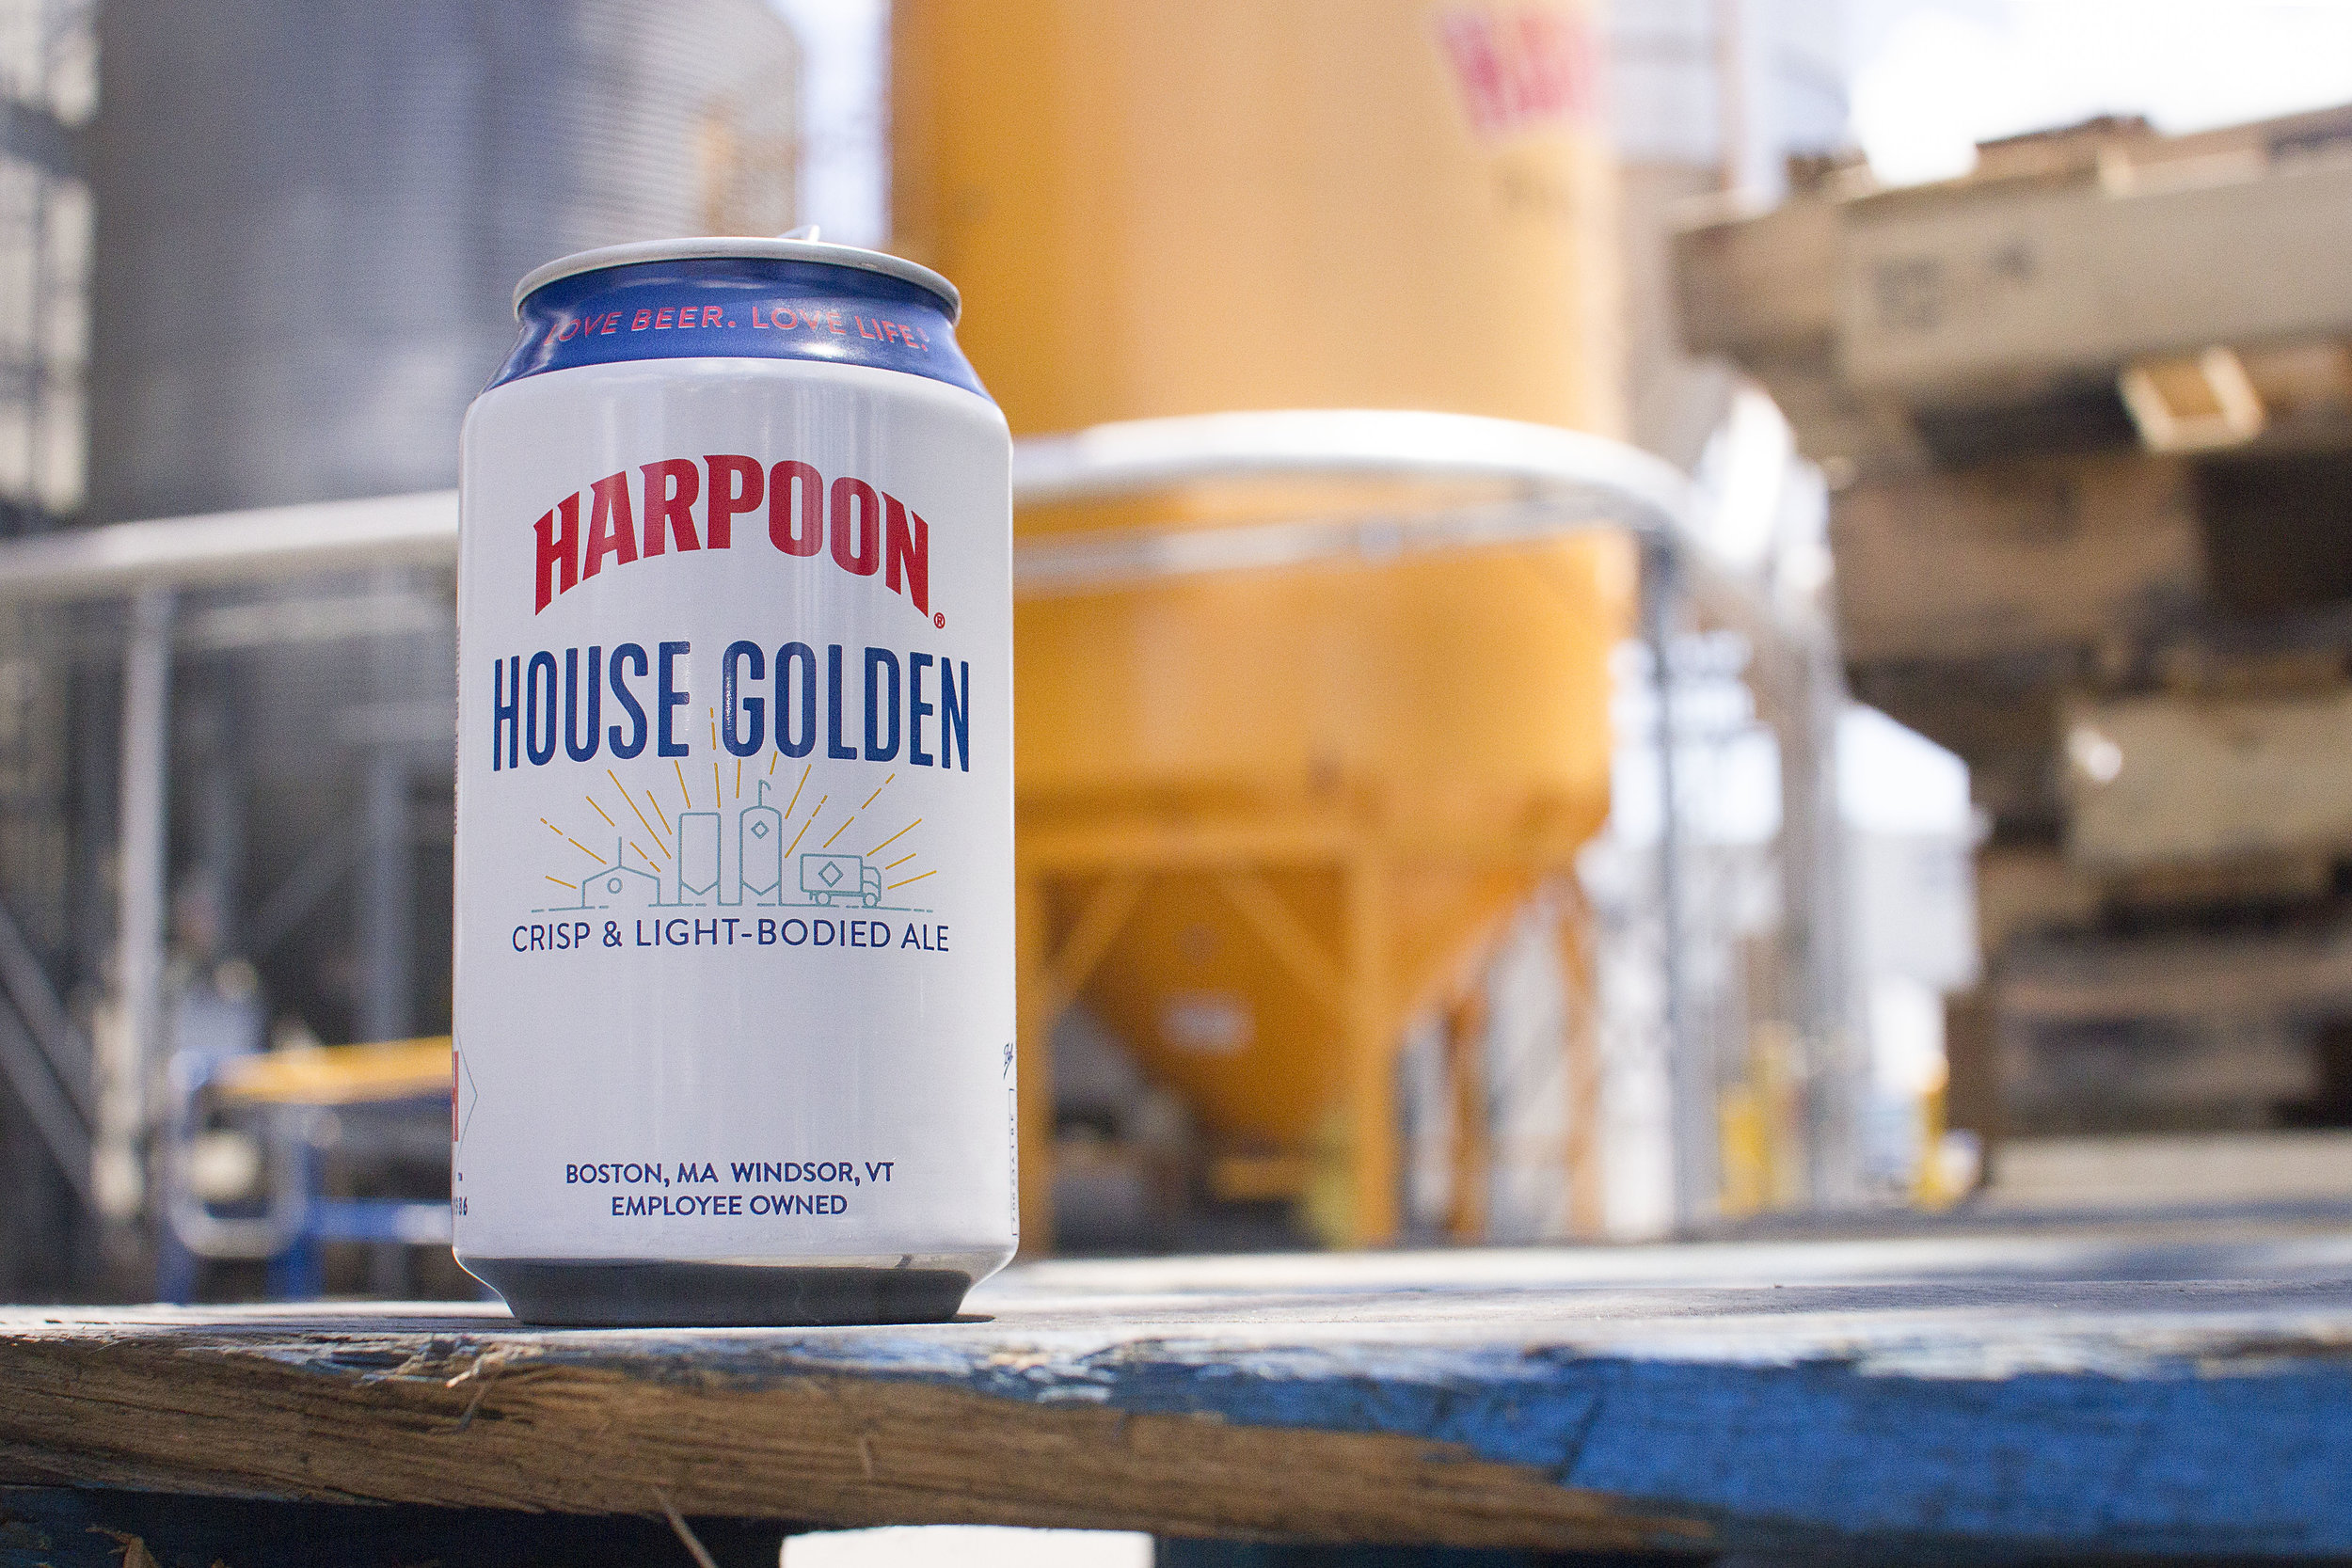 """Harpoon """"House Golden""""packaging, 2017. Photo courtesy of Harpoon Brewery."""